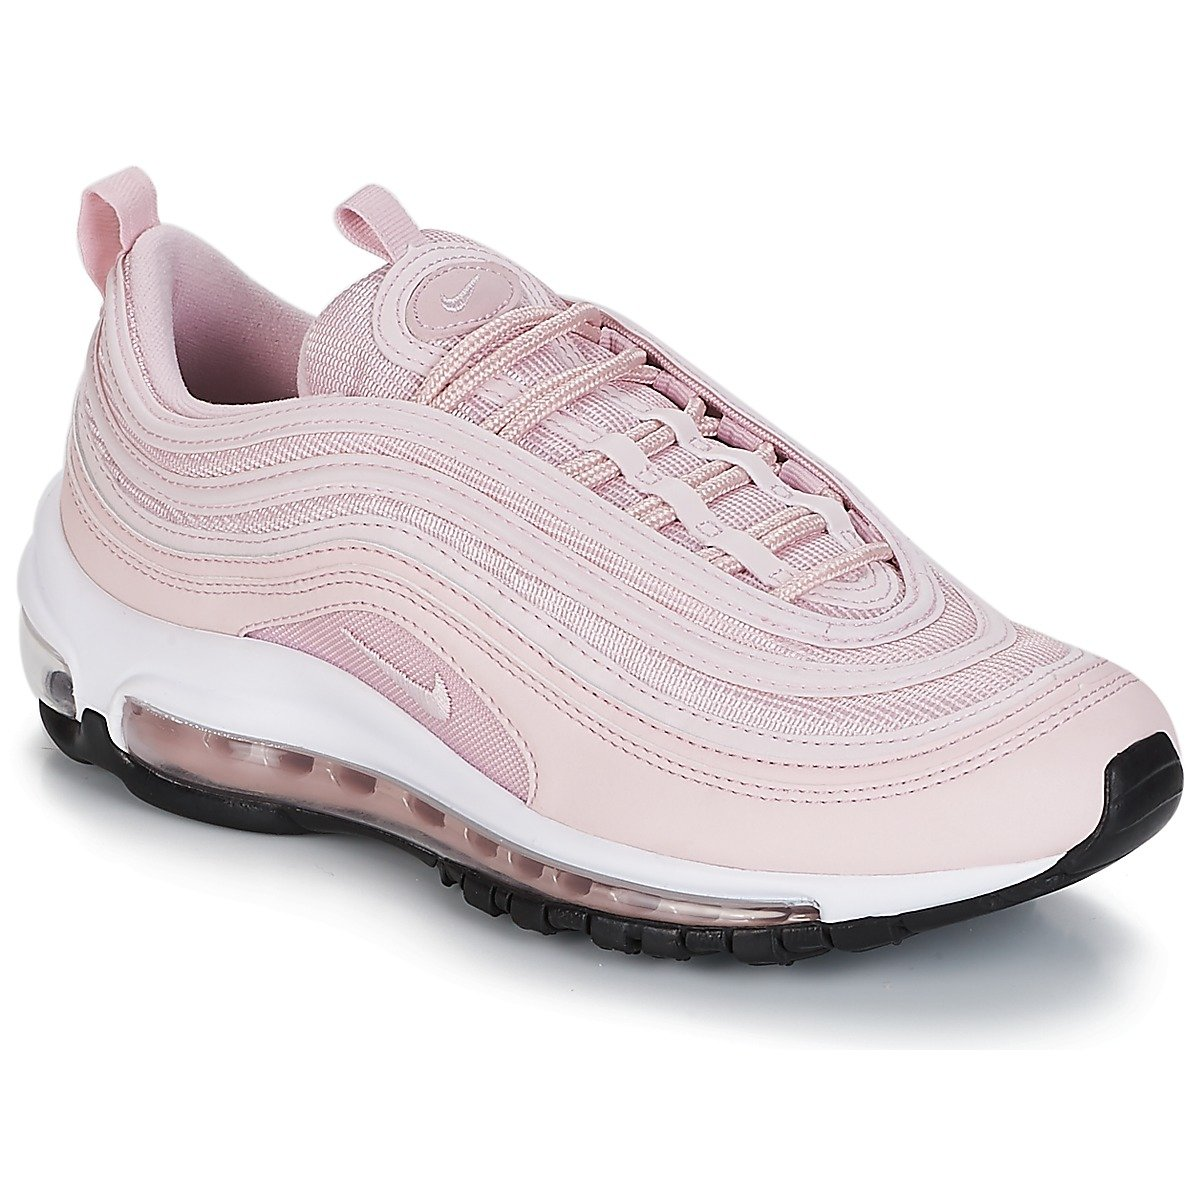 4813faec0af Nike W AIR MAX 97 Women s Sneaker Shoes in Pink Leather 921733-600   Amazon.co.uk  Shoes   Bags